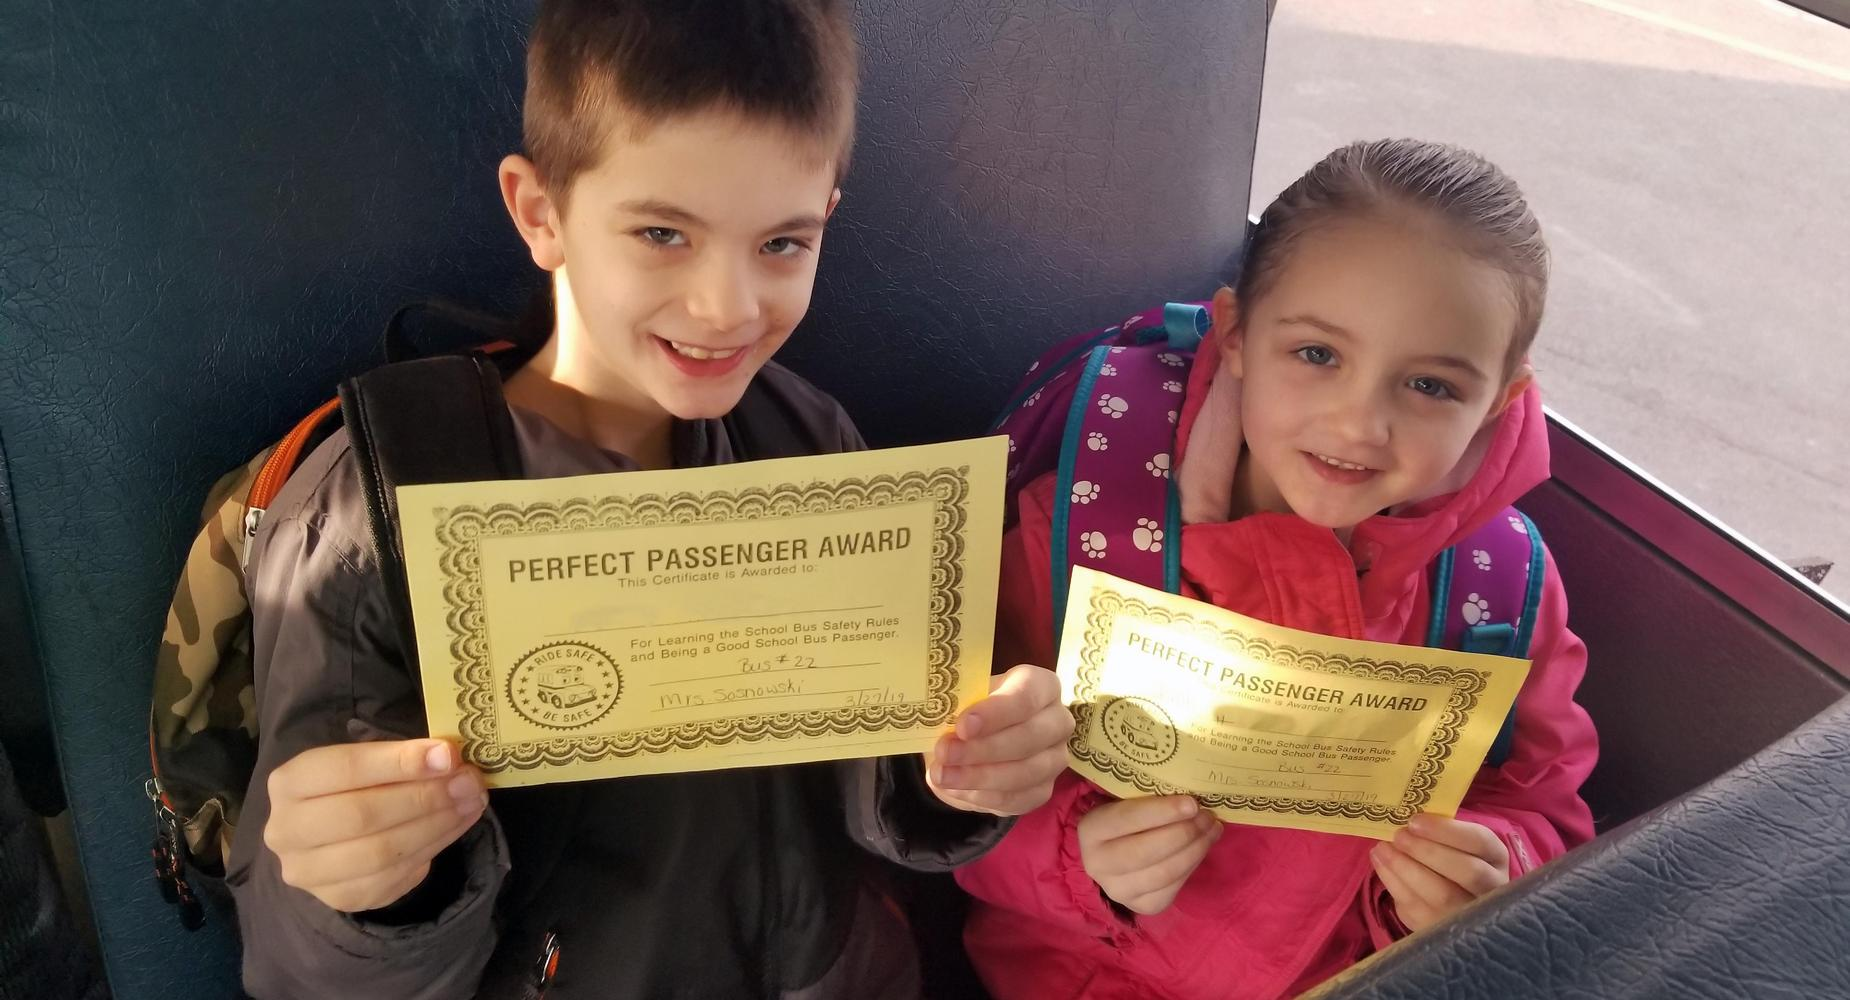 students on bus holding award